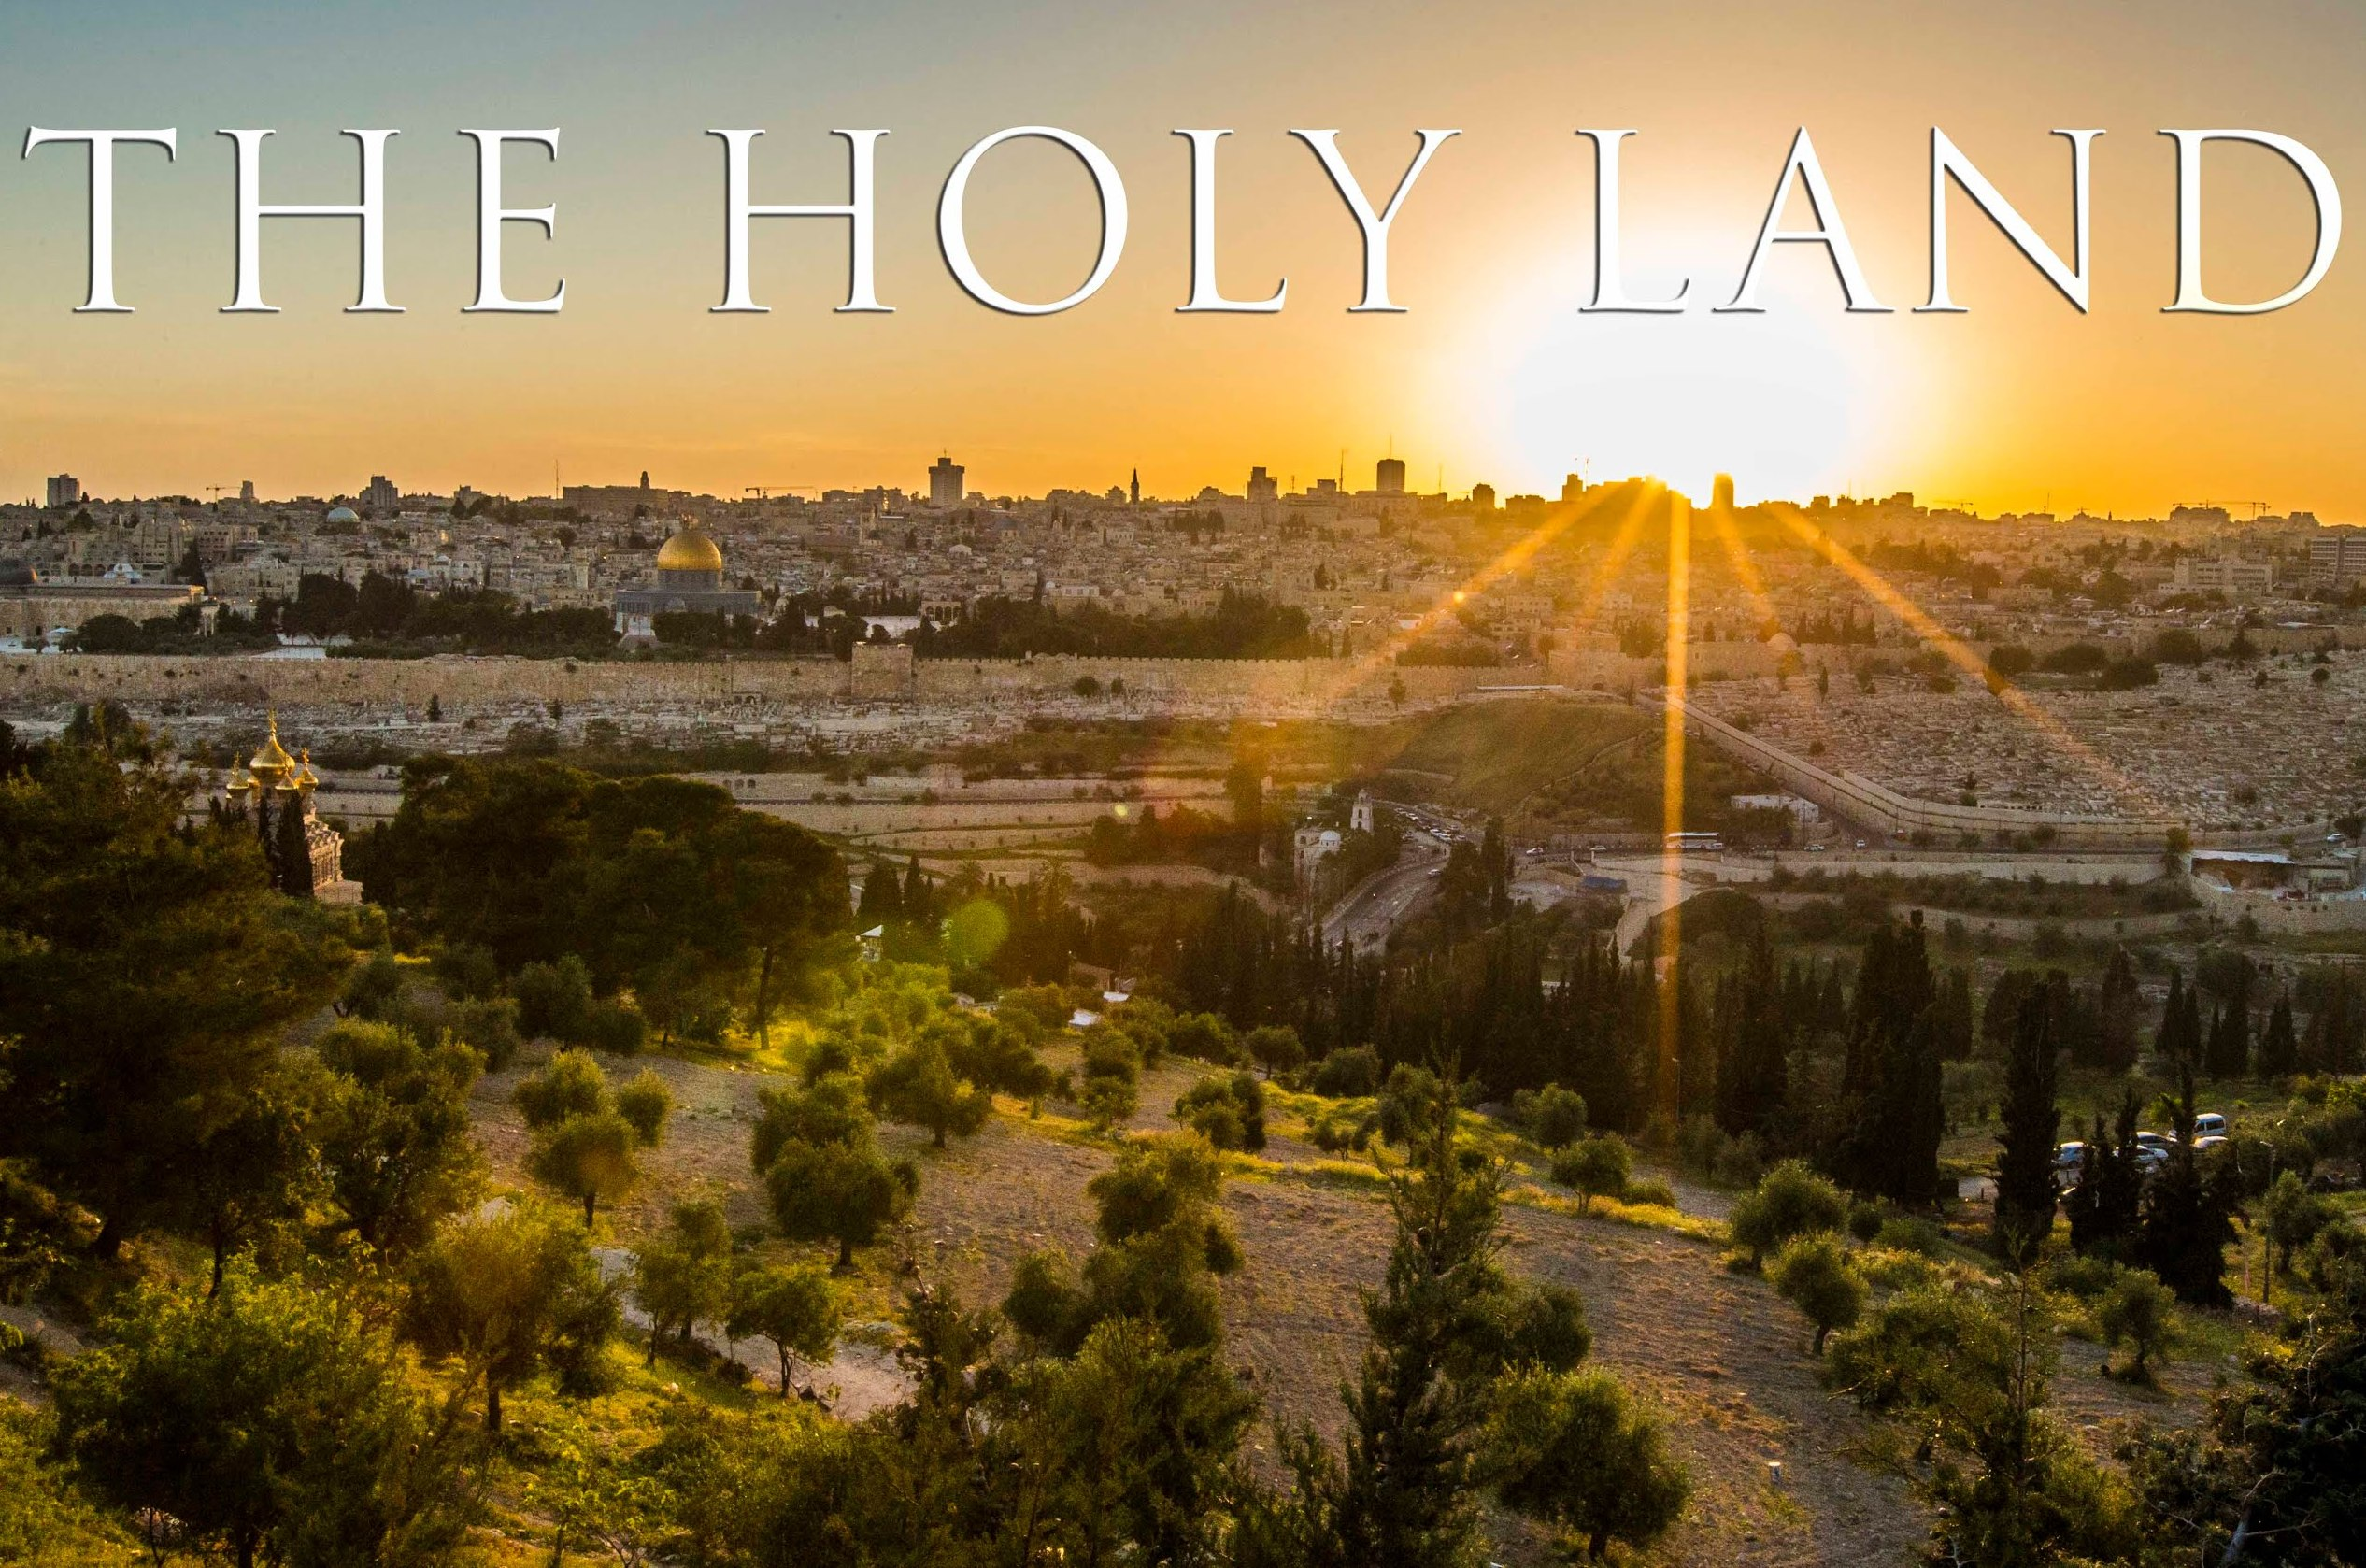 The Holy land pic